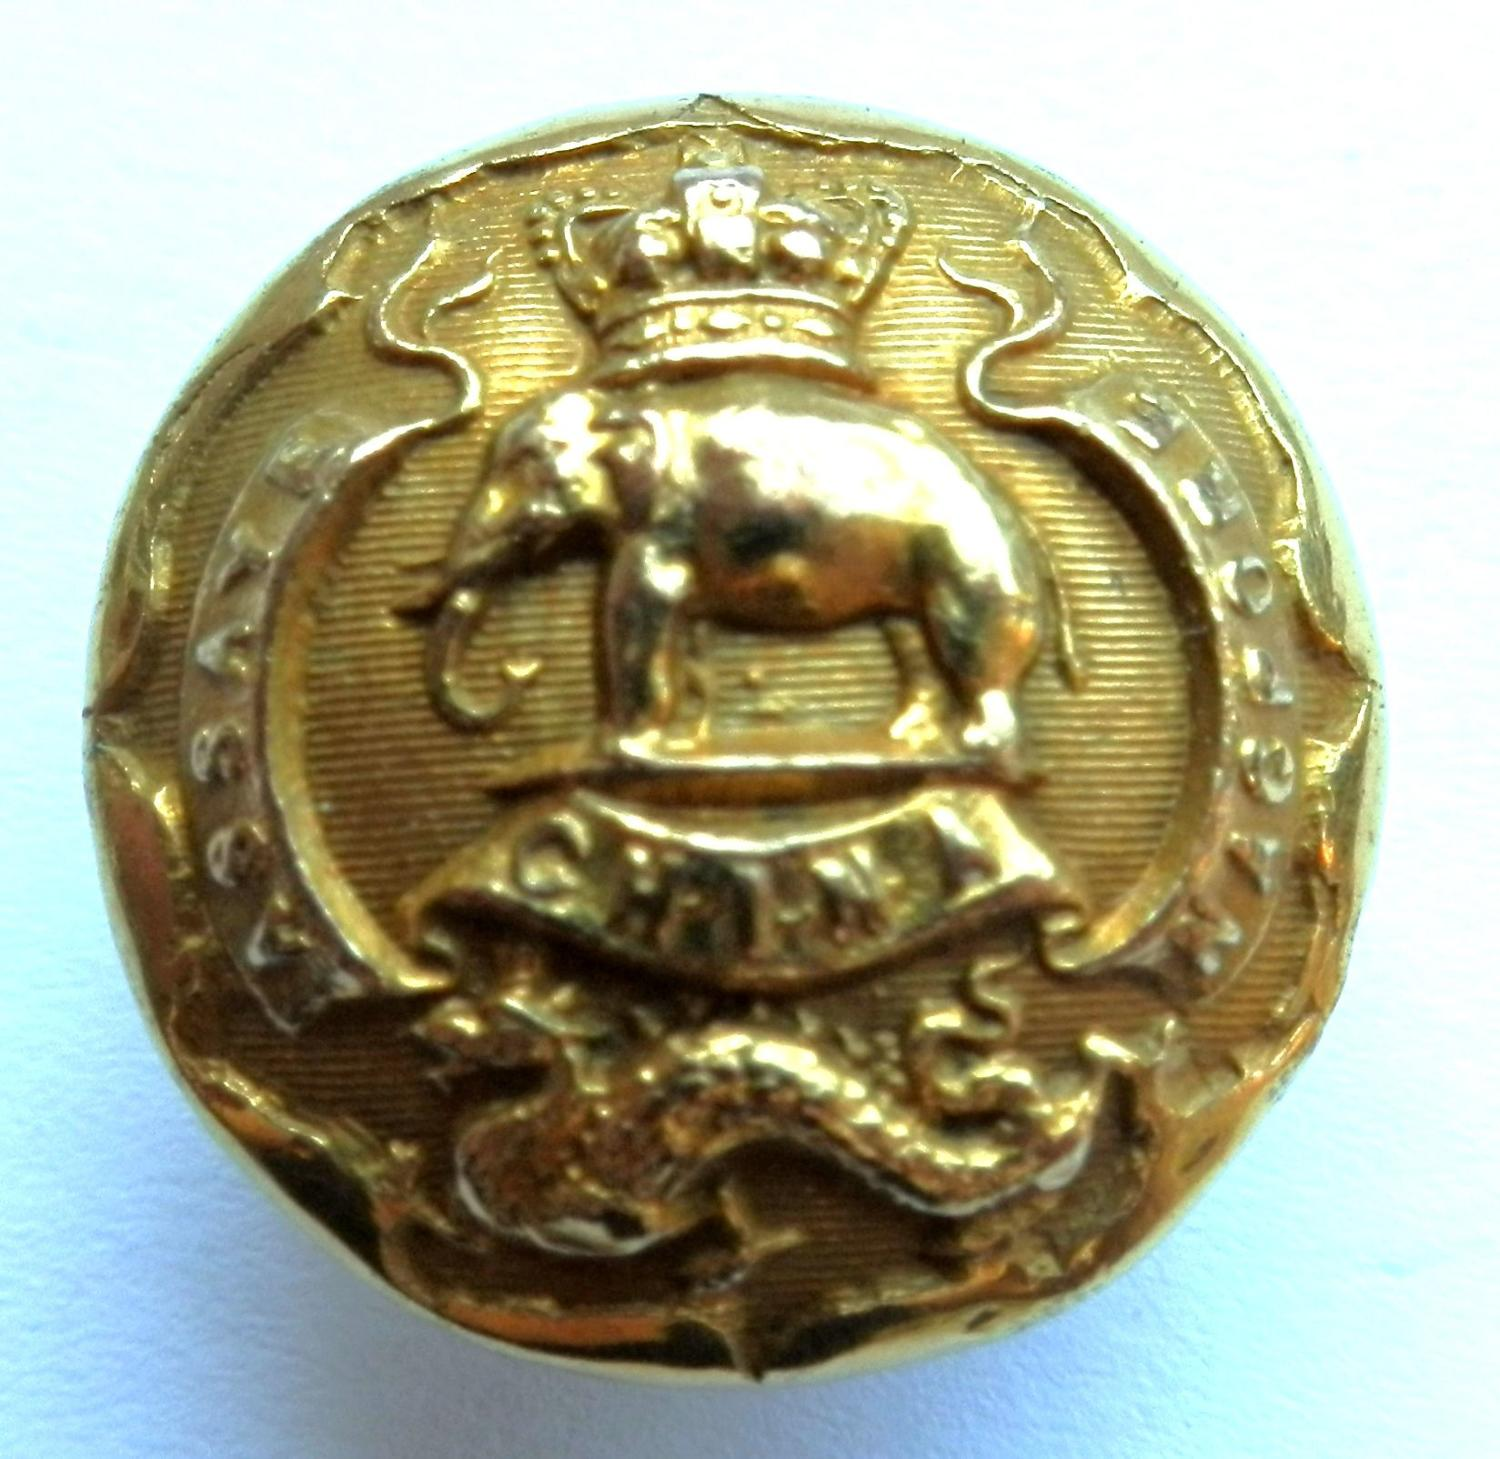 2nd Regt. Madras Infantry Button.